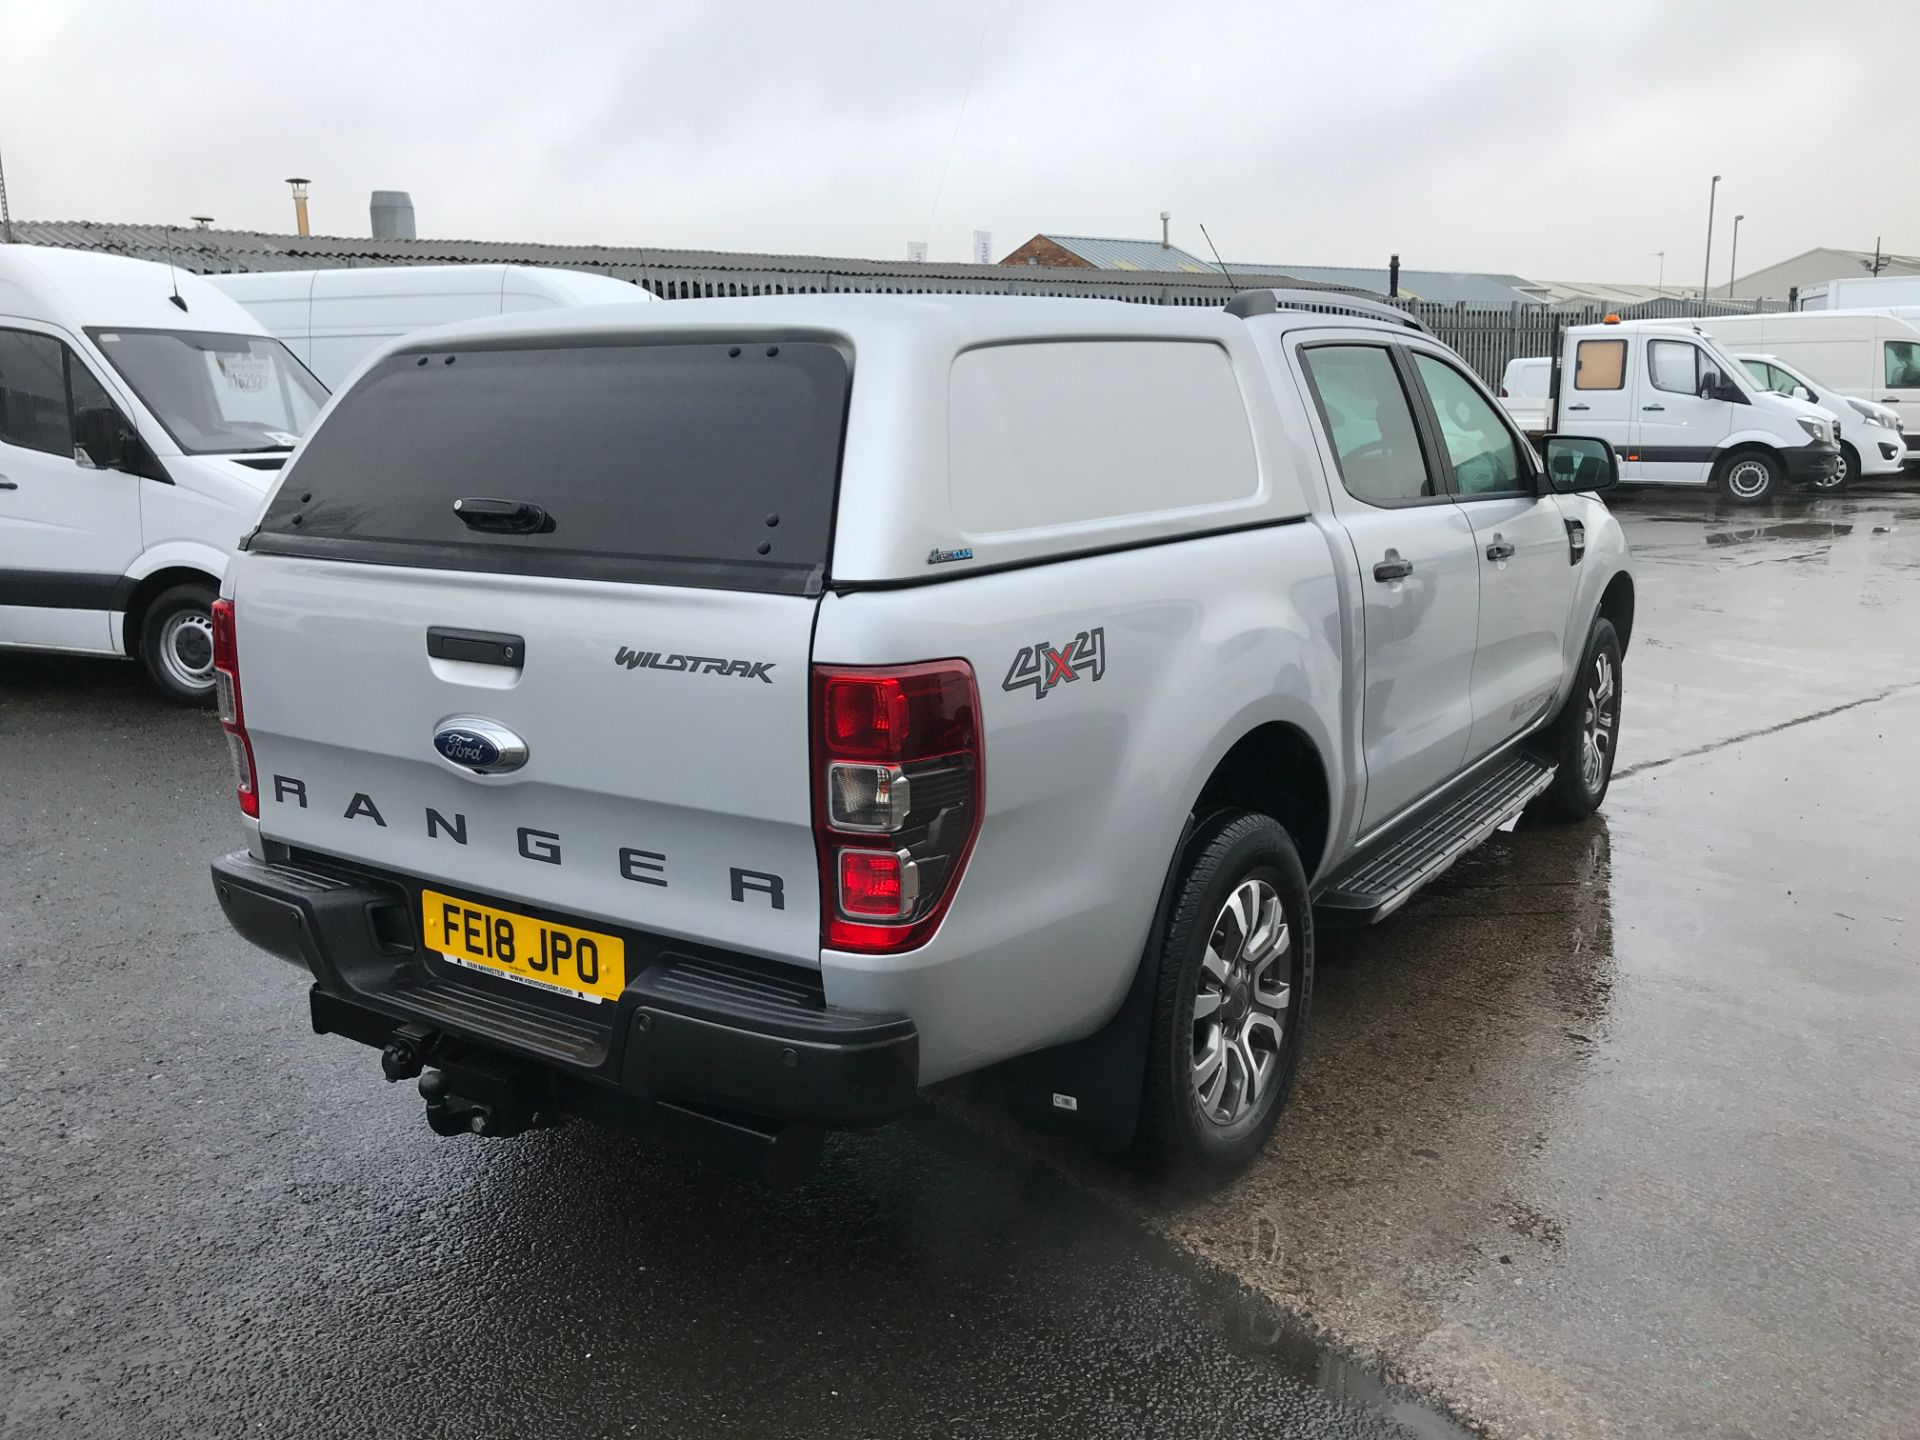 2018 Ford Ranger DOUBLE CAB 4X4 WILDTRAK 3.2TDI 200PS EURO 5 (FE18JPO) Image 8